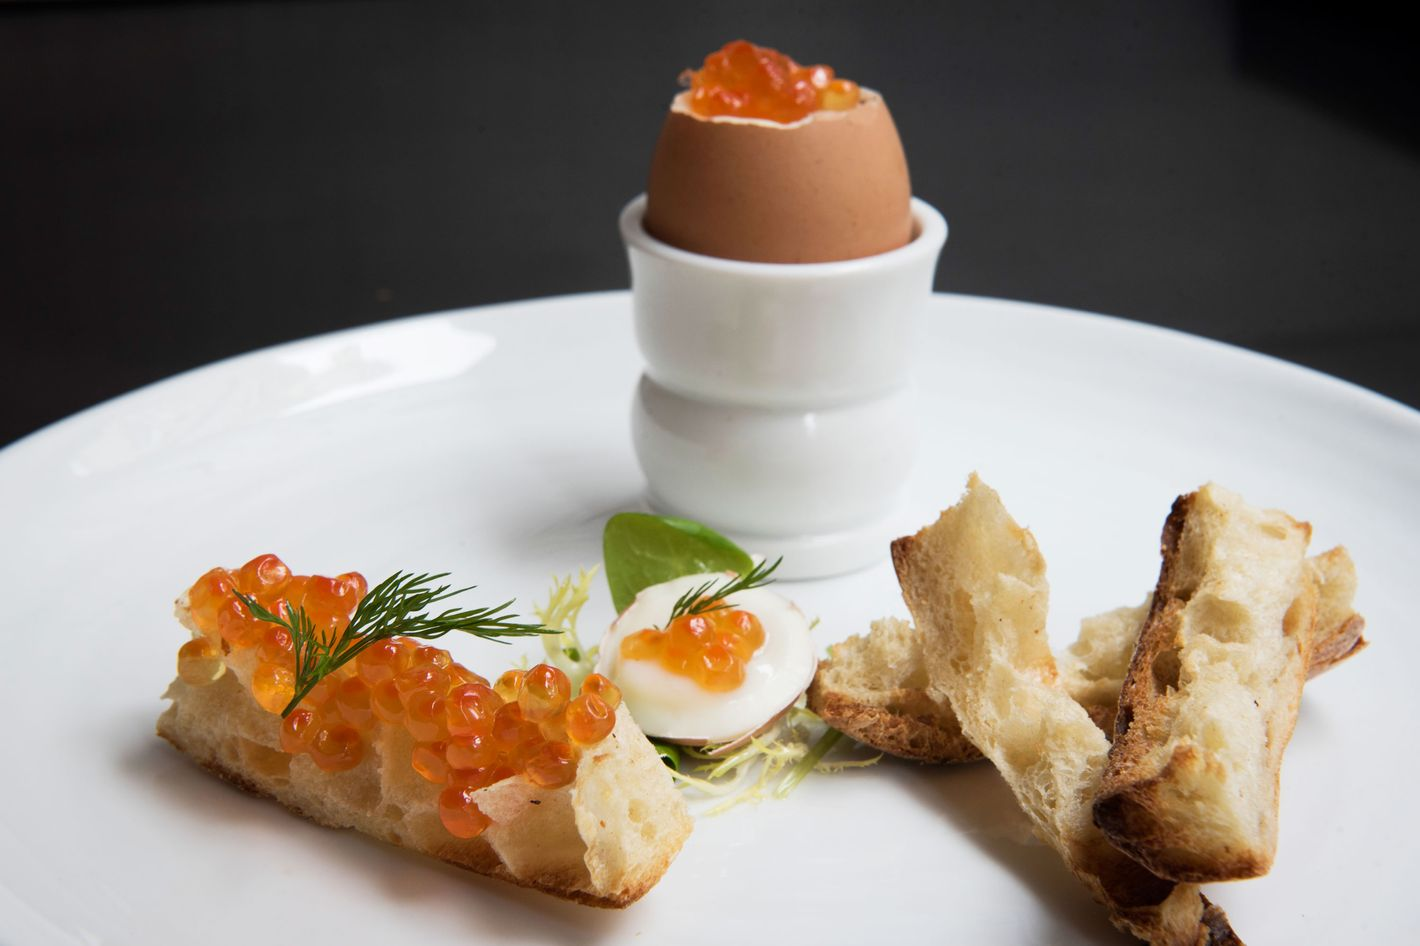 Soft-boiled eggs topped with salmon roe and dill, and served with butter soldiers for dipping.